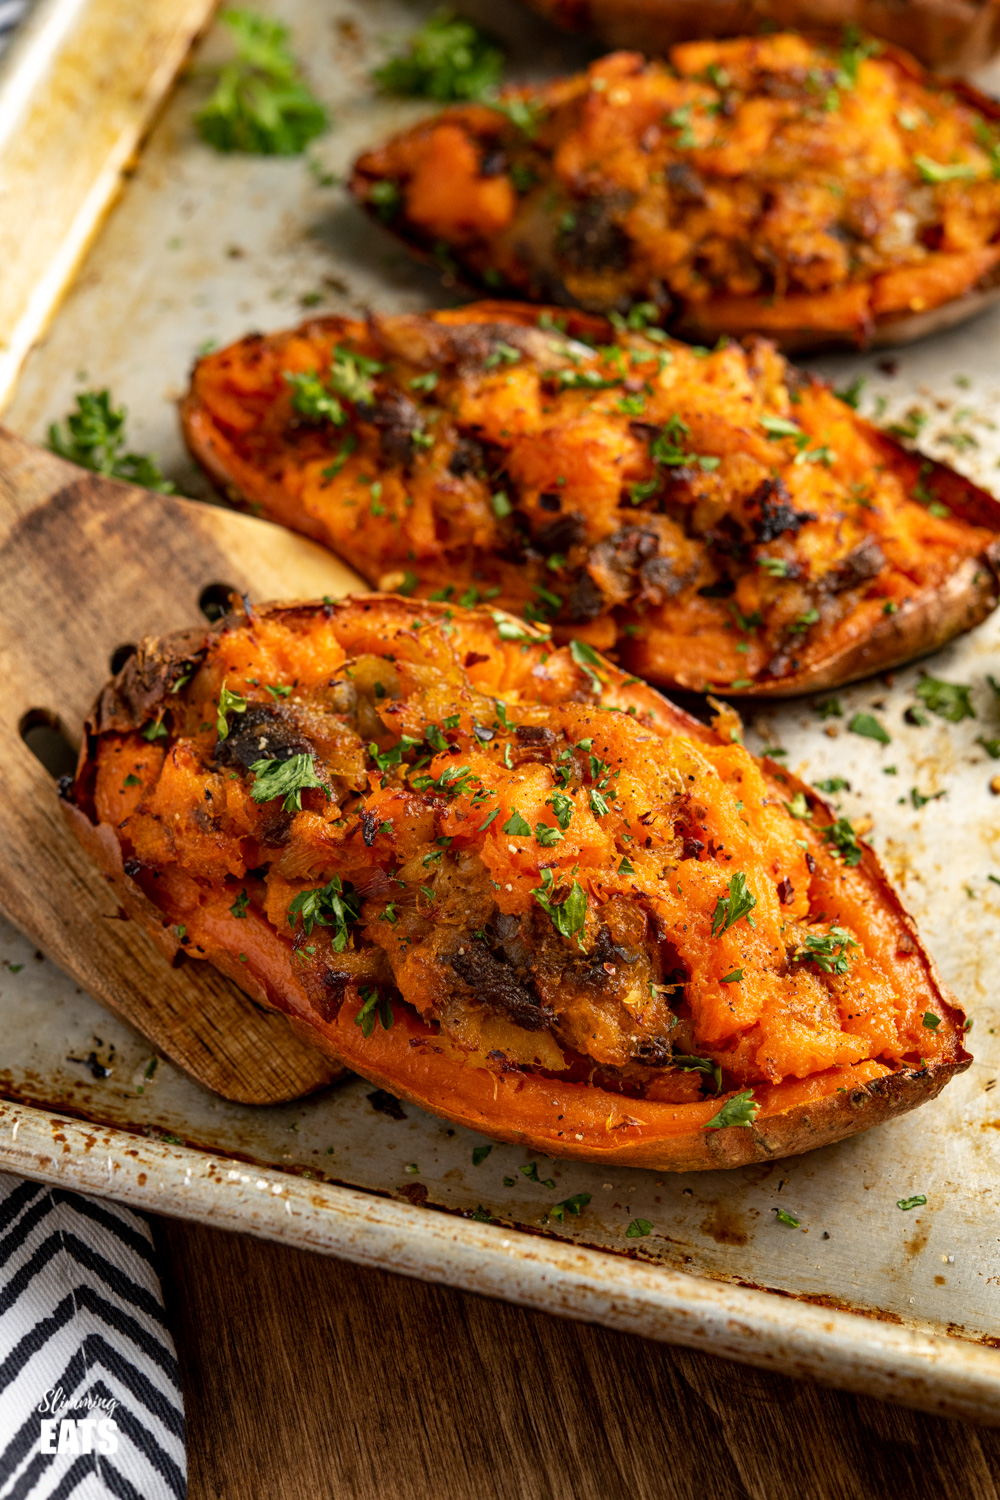 double baked sweet potatoes stuffed with smoked mackerel on a baking tray